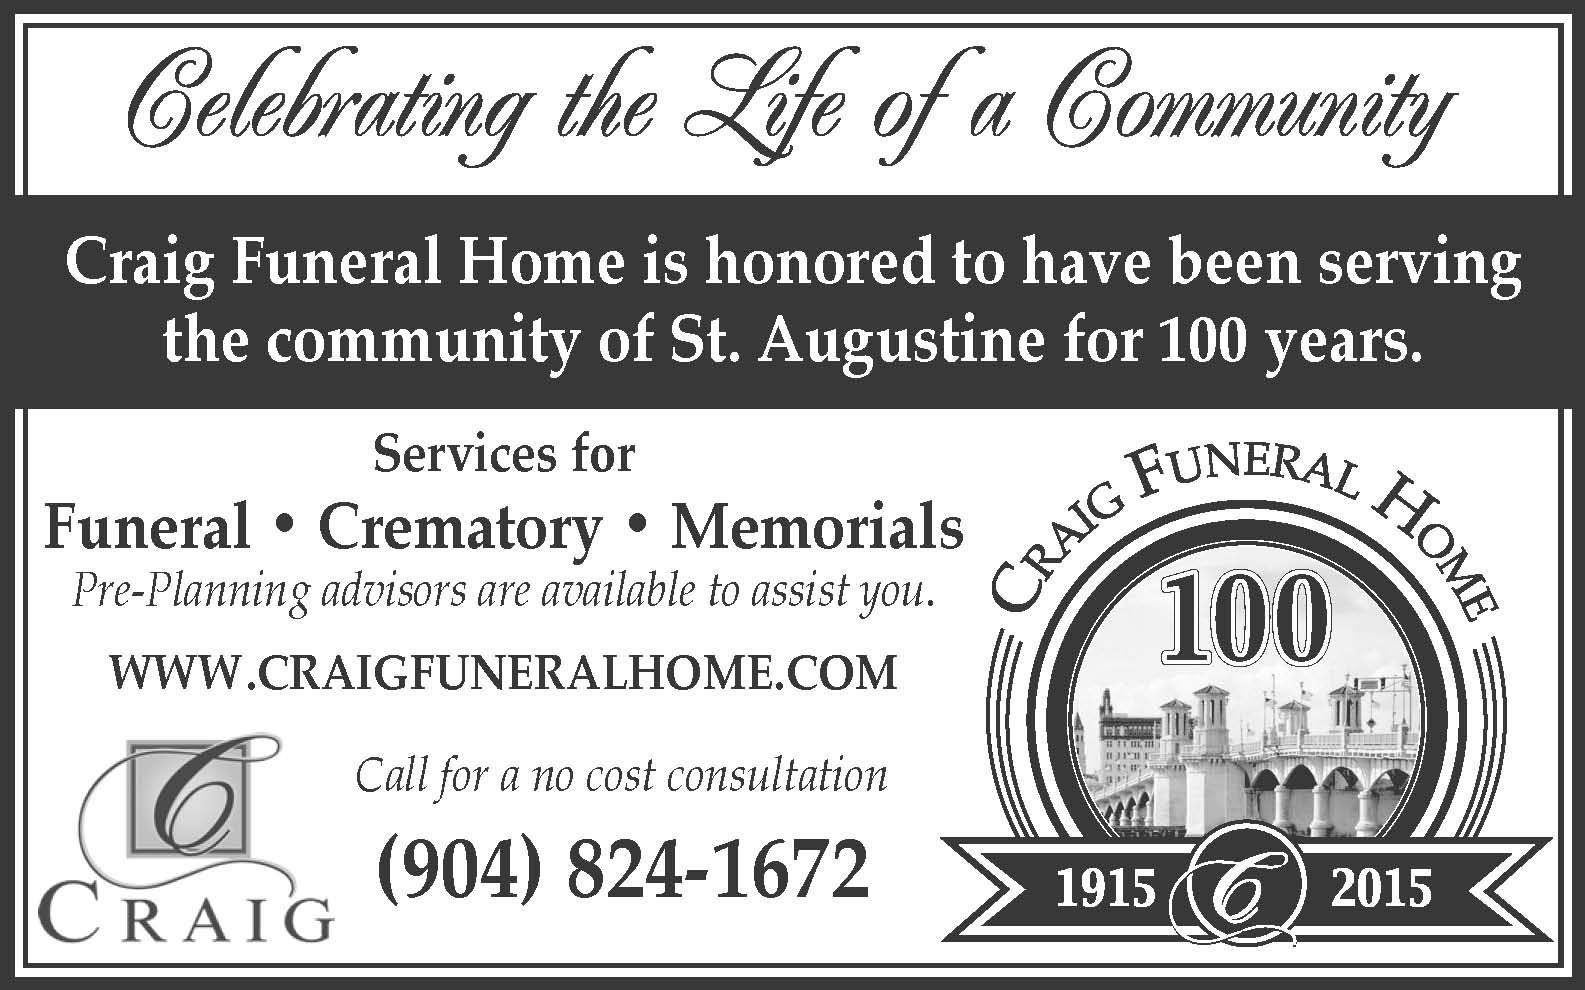 Craig Funeral Home How to plan